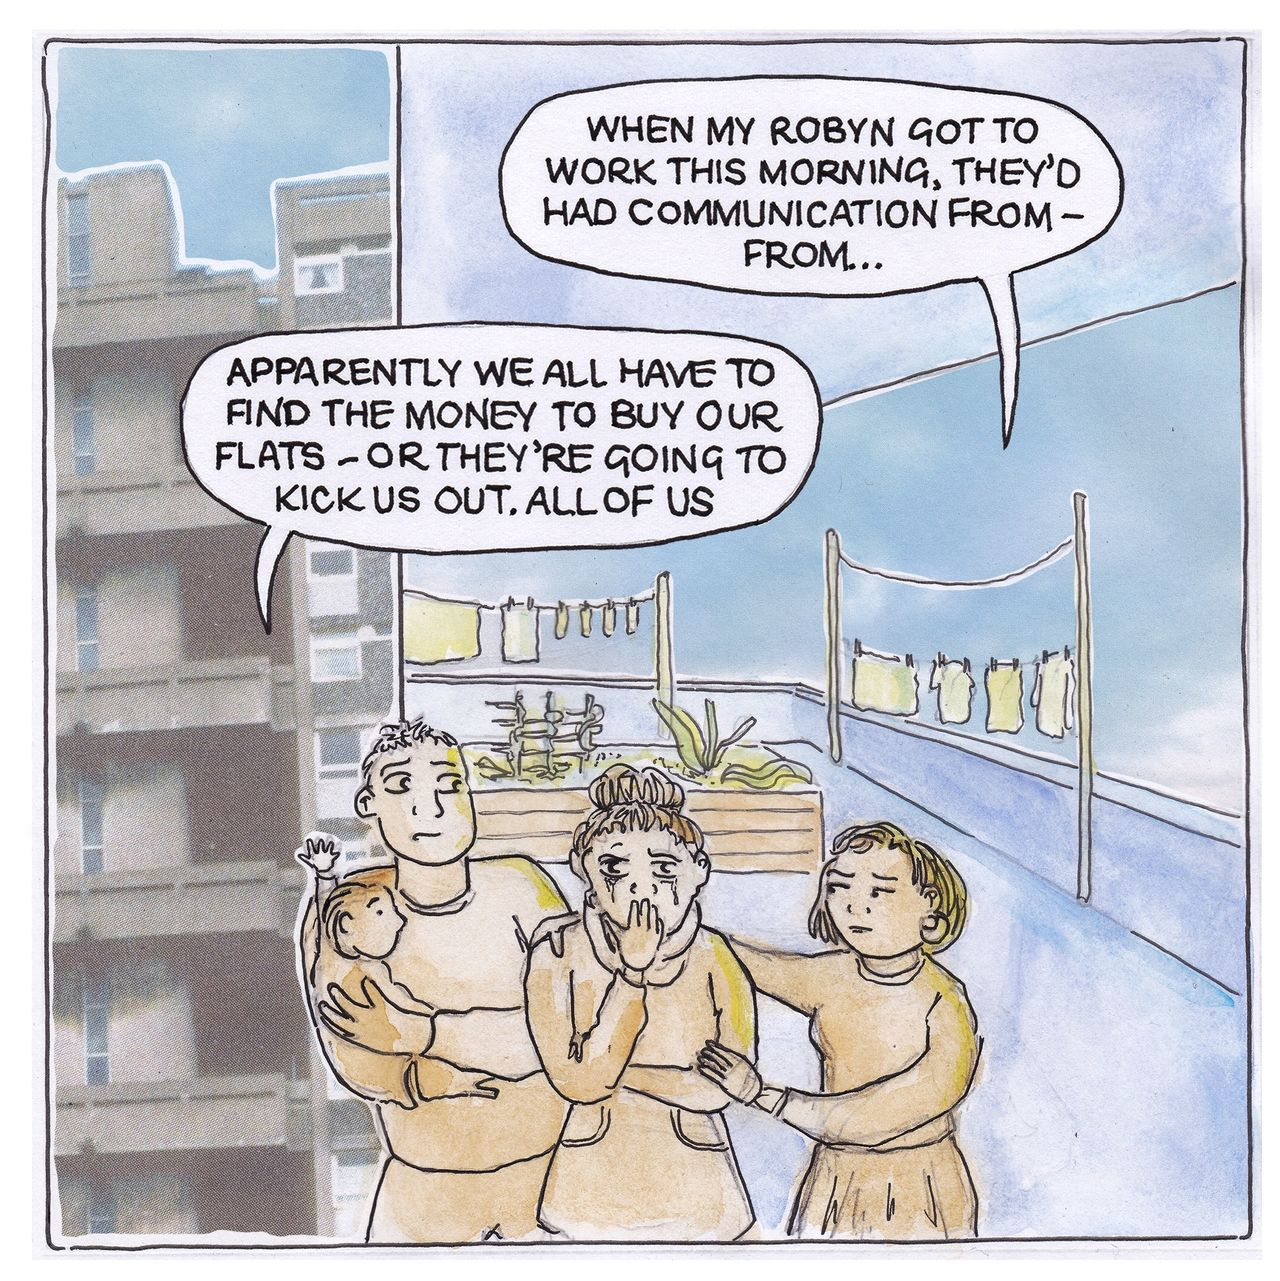 Lucy and a few others are upset and tell Joan that they've received a message telling them all residents of the tower block need to find the money to pay for their flats or they have to leave them and find somewhere else to live.